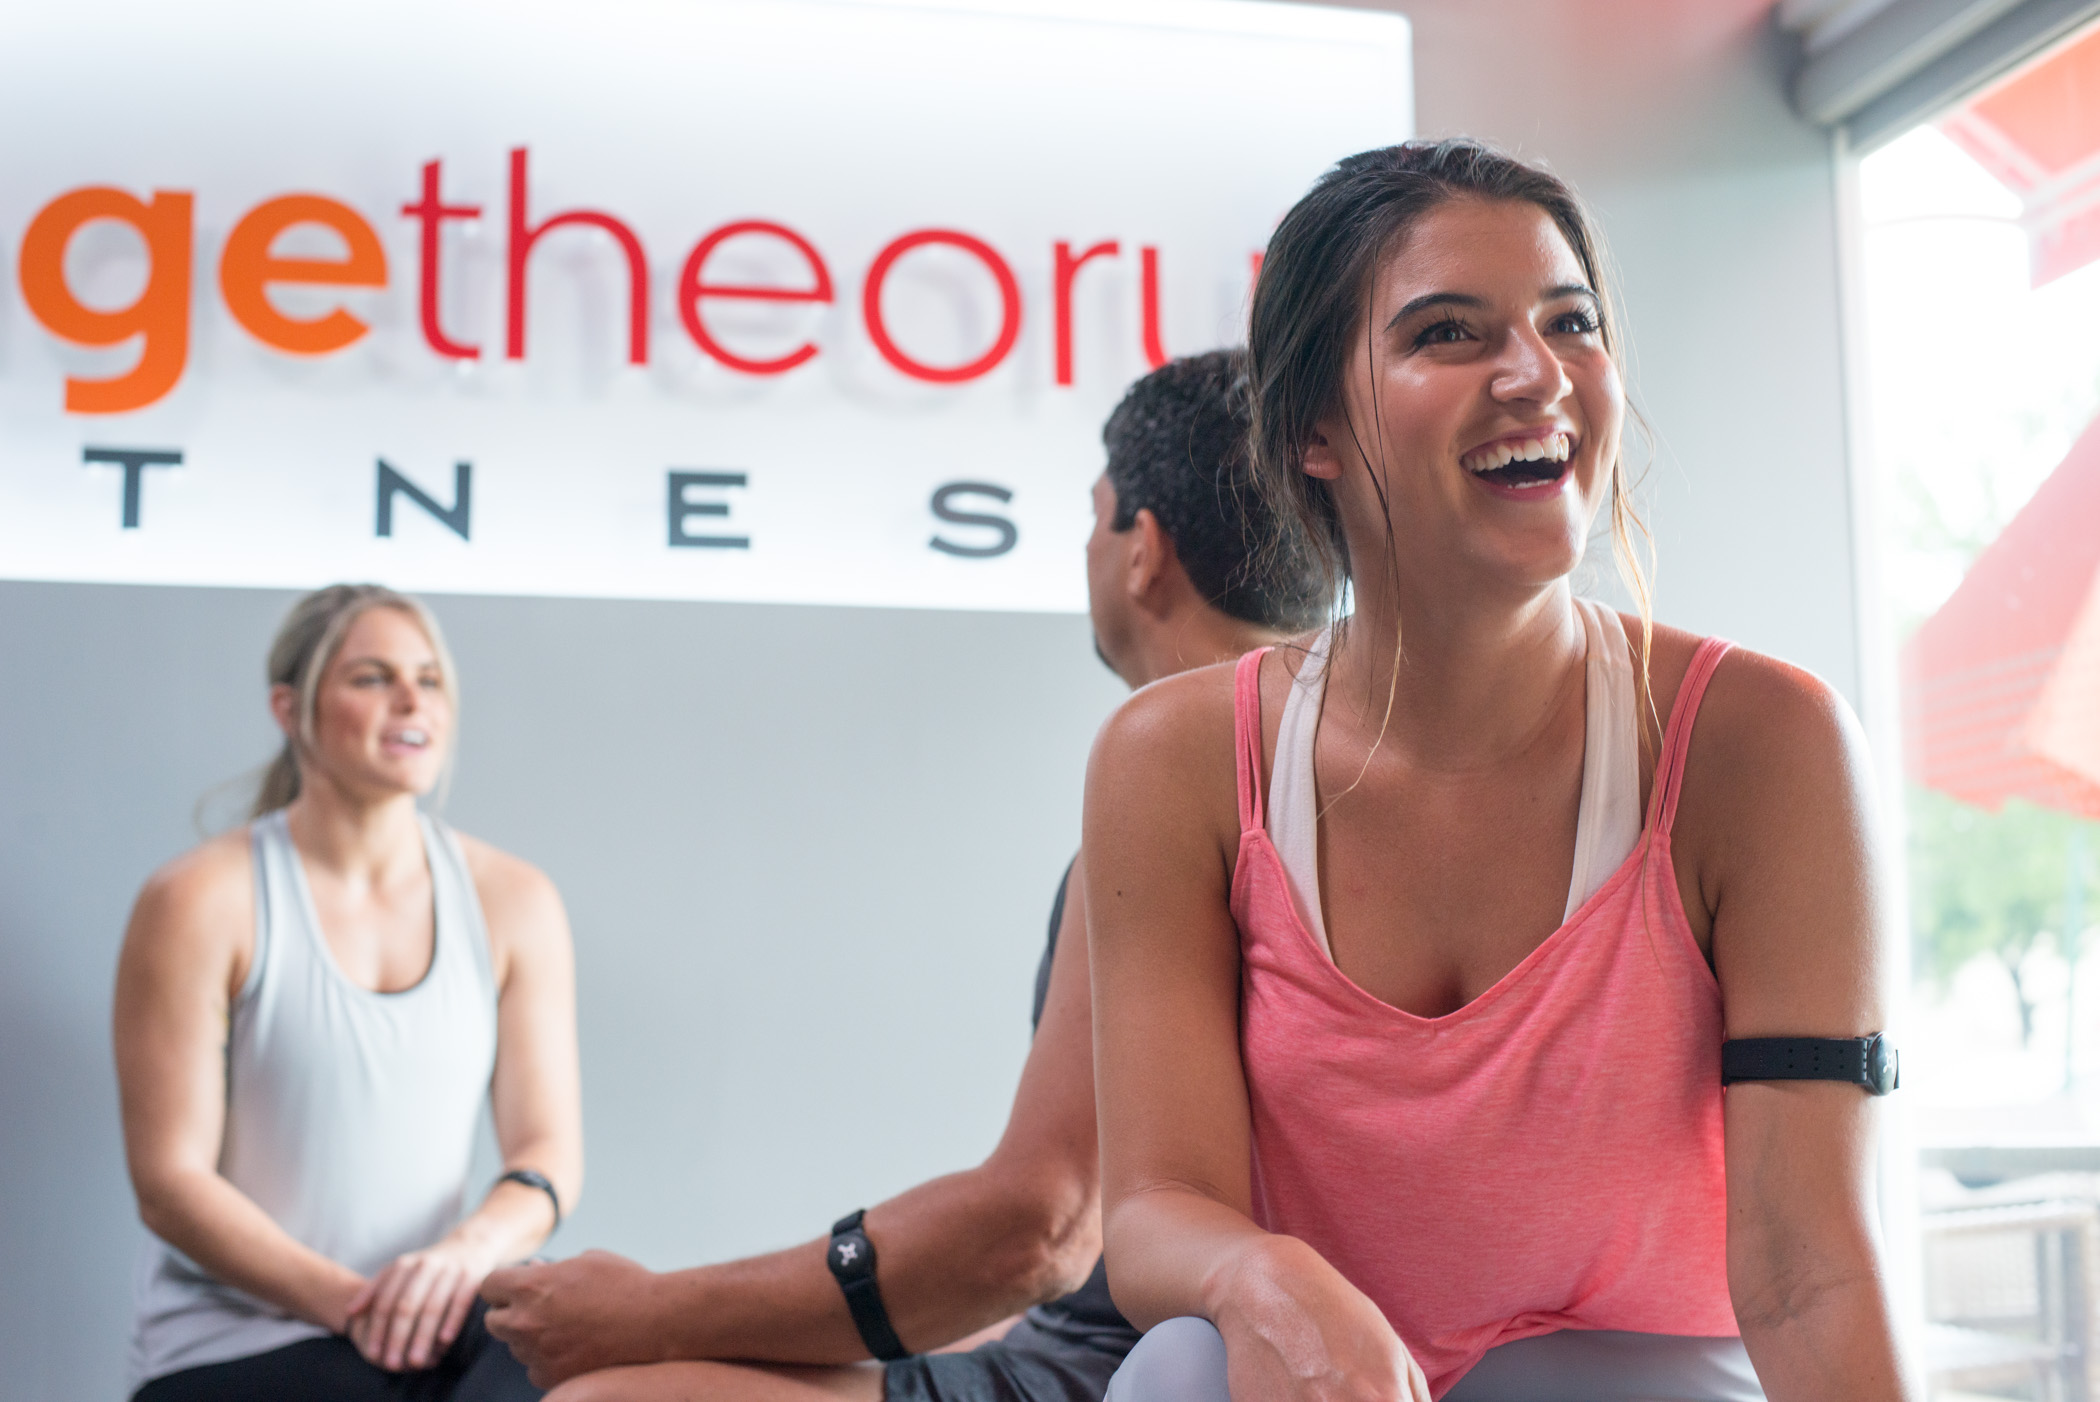 Get more life with one of Australia's fastest growing fitness franchises